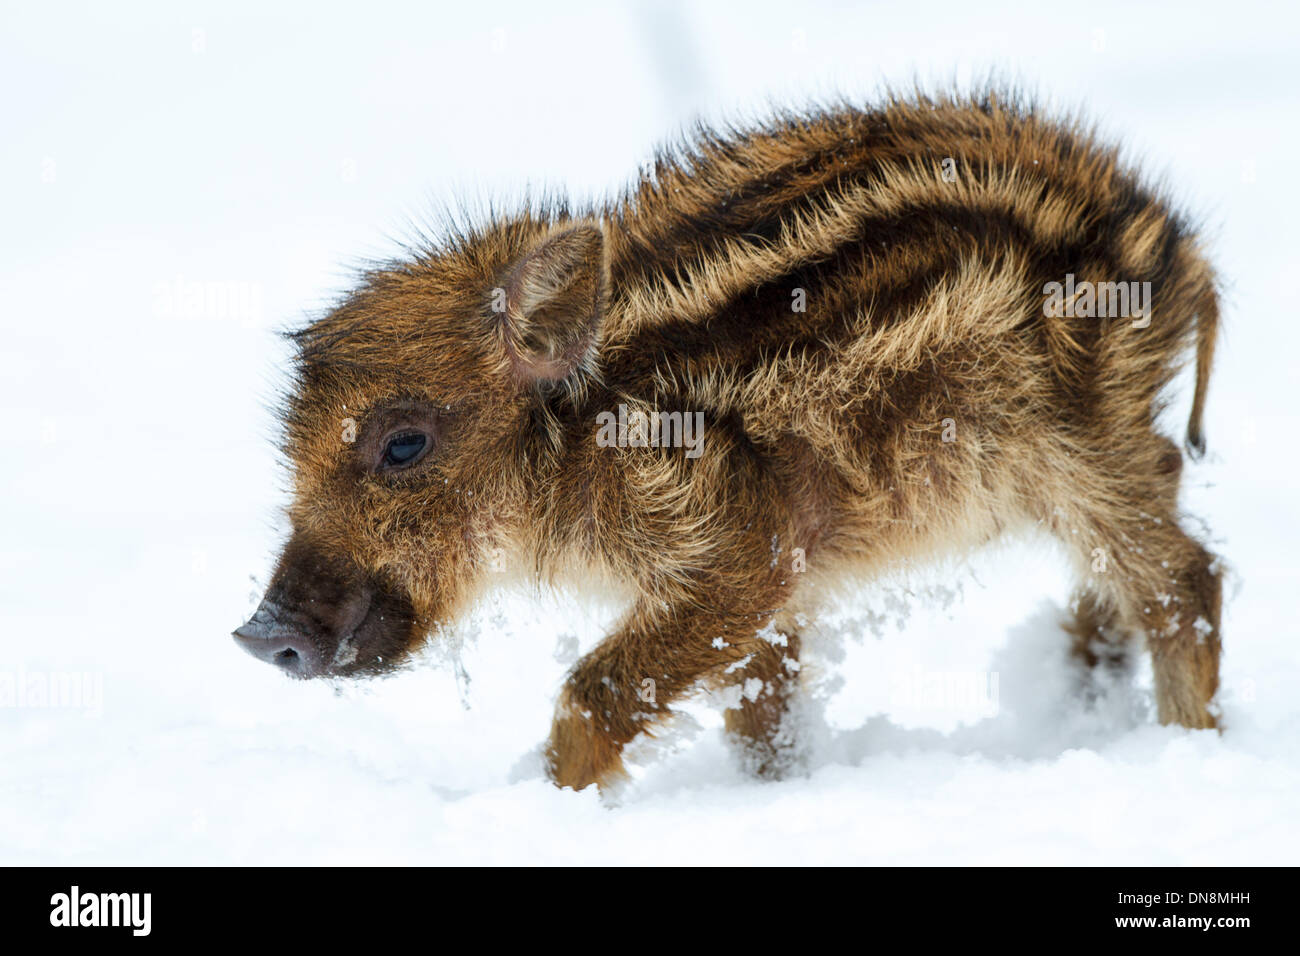 A young wild boar is in winter in the snow in search of food - Stock Image